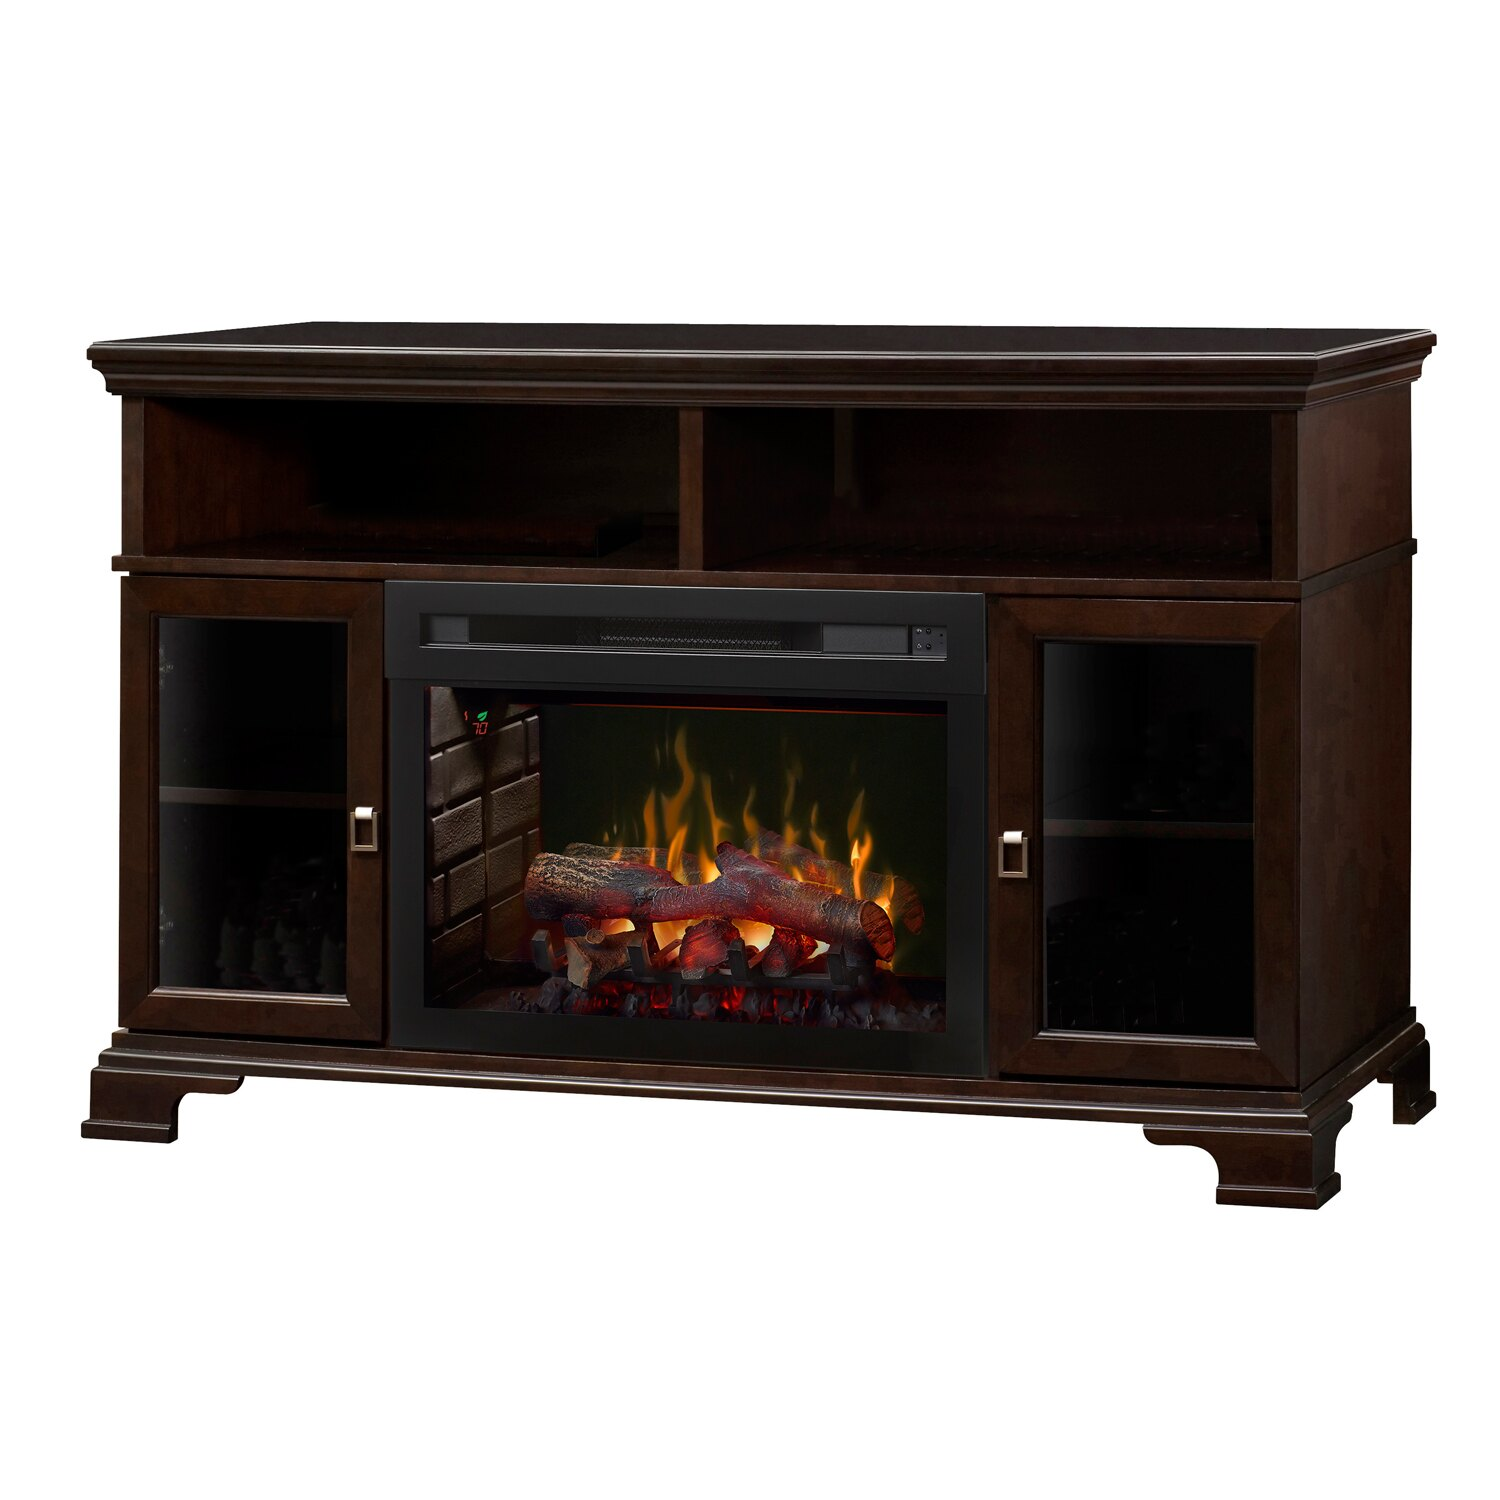 Double Sided Electric Fireplace Elegant Dimplex Electric Fireplace Brookings with Logs Espresso